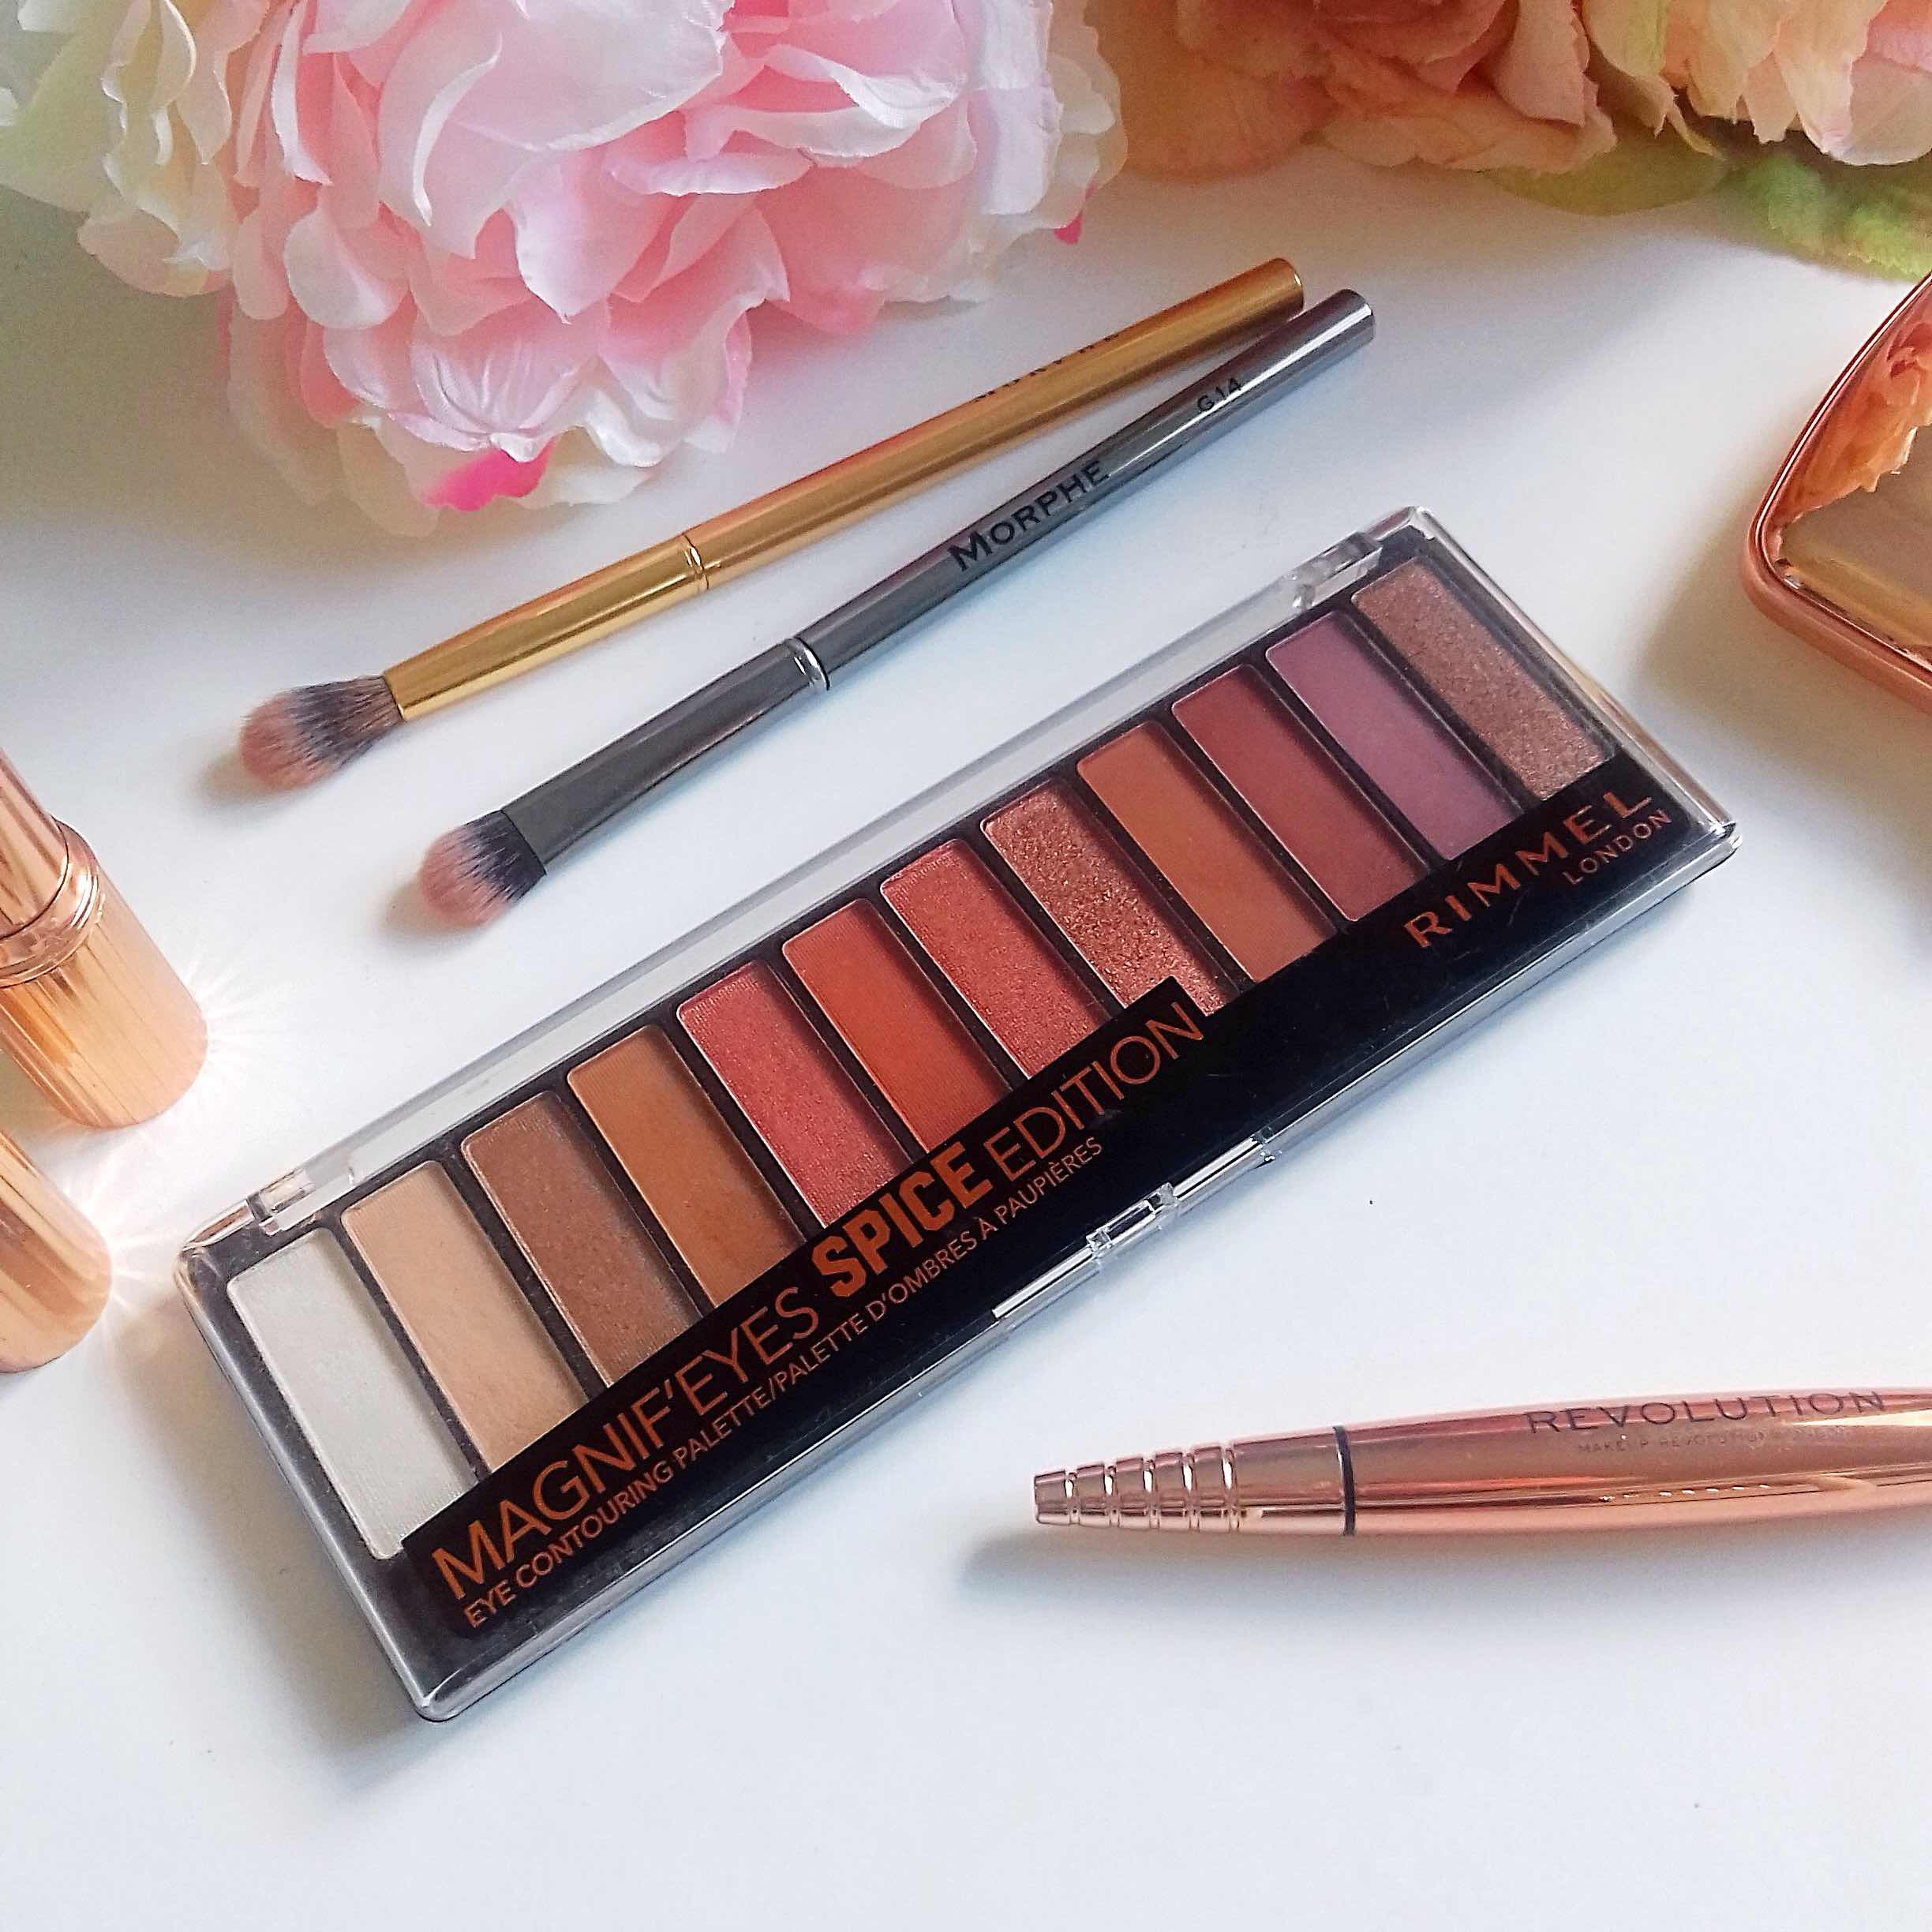 rimmel, spice edition, magnifeyes eyeshadow palette, review, makeup, warmtones, dupe for naked heat